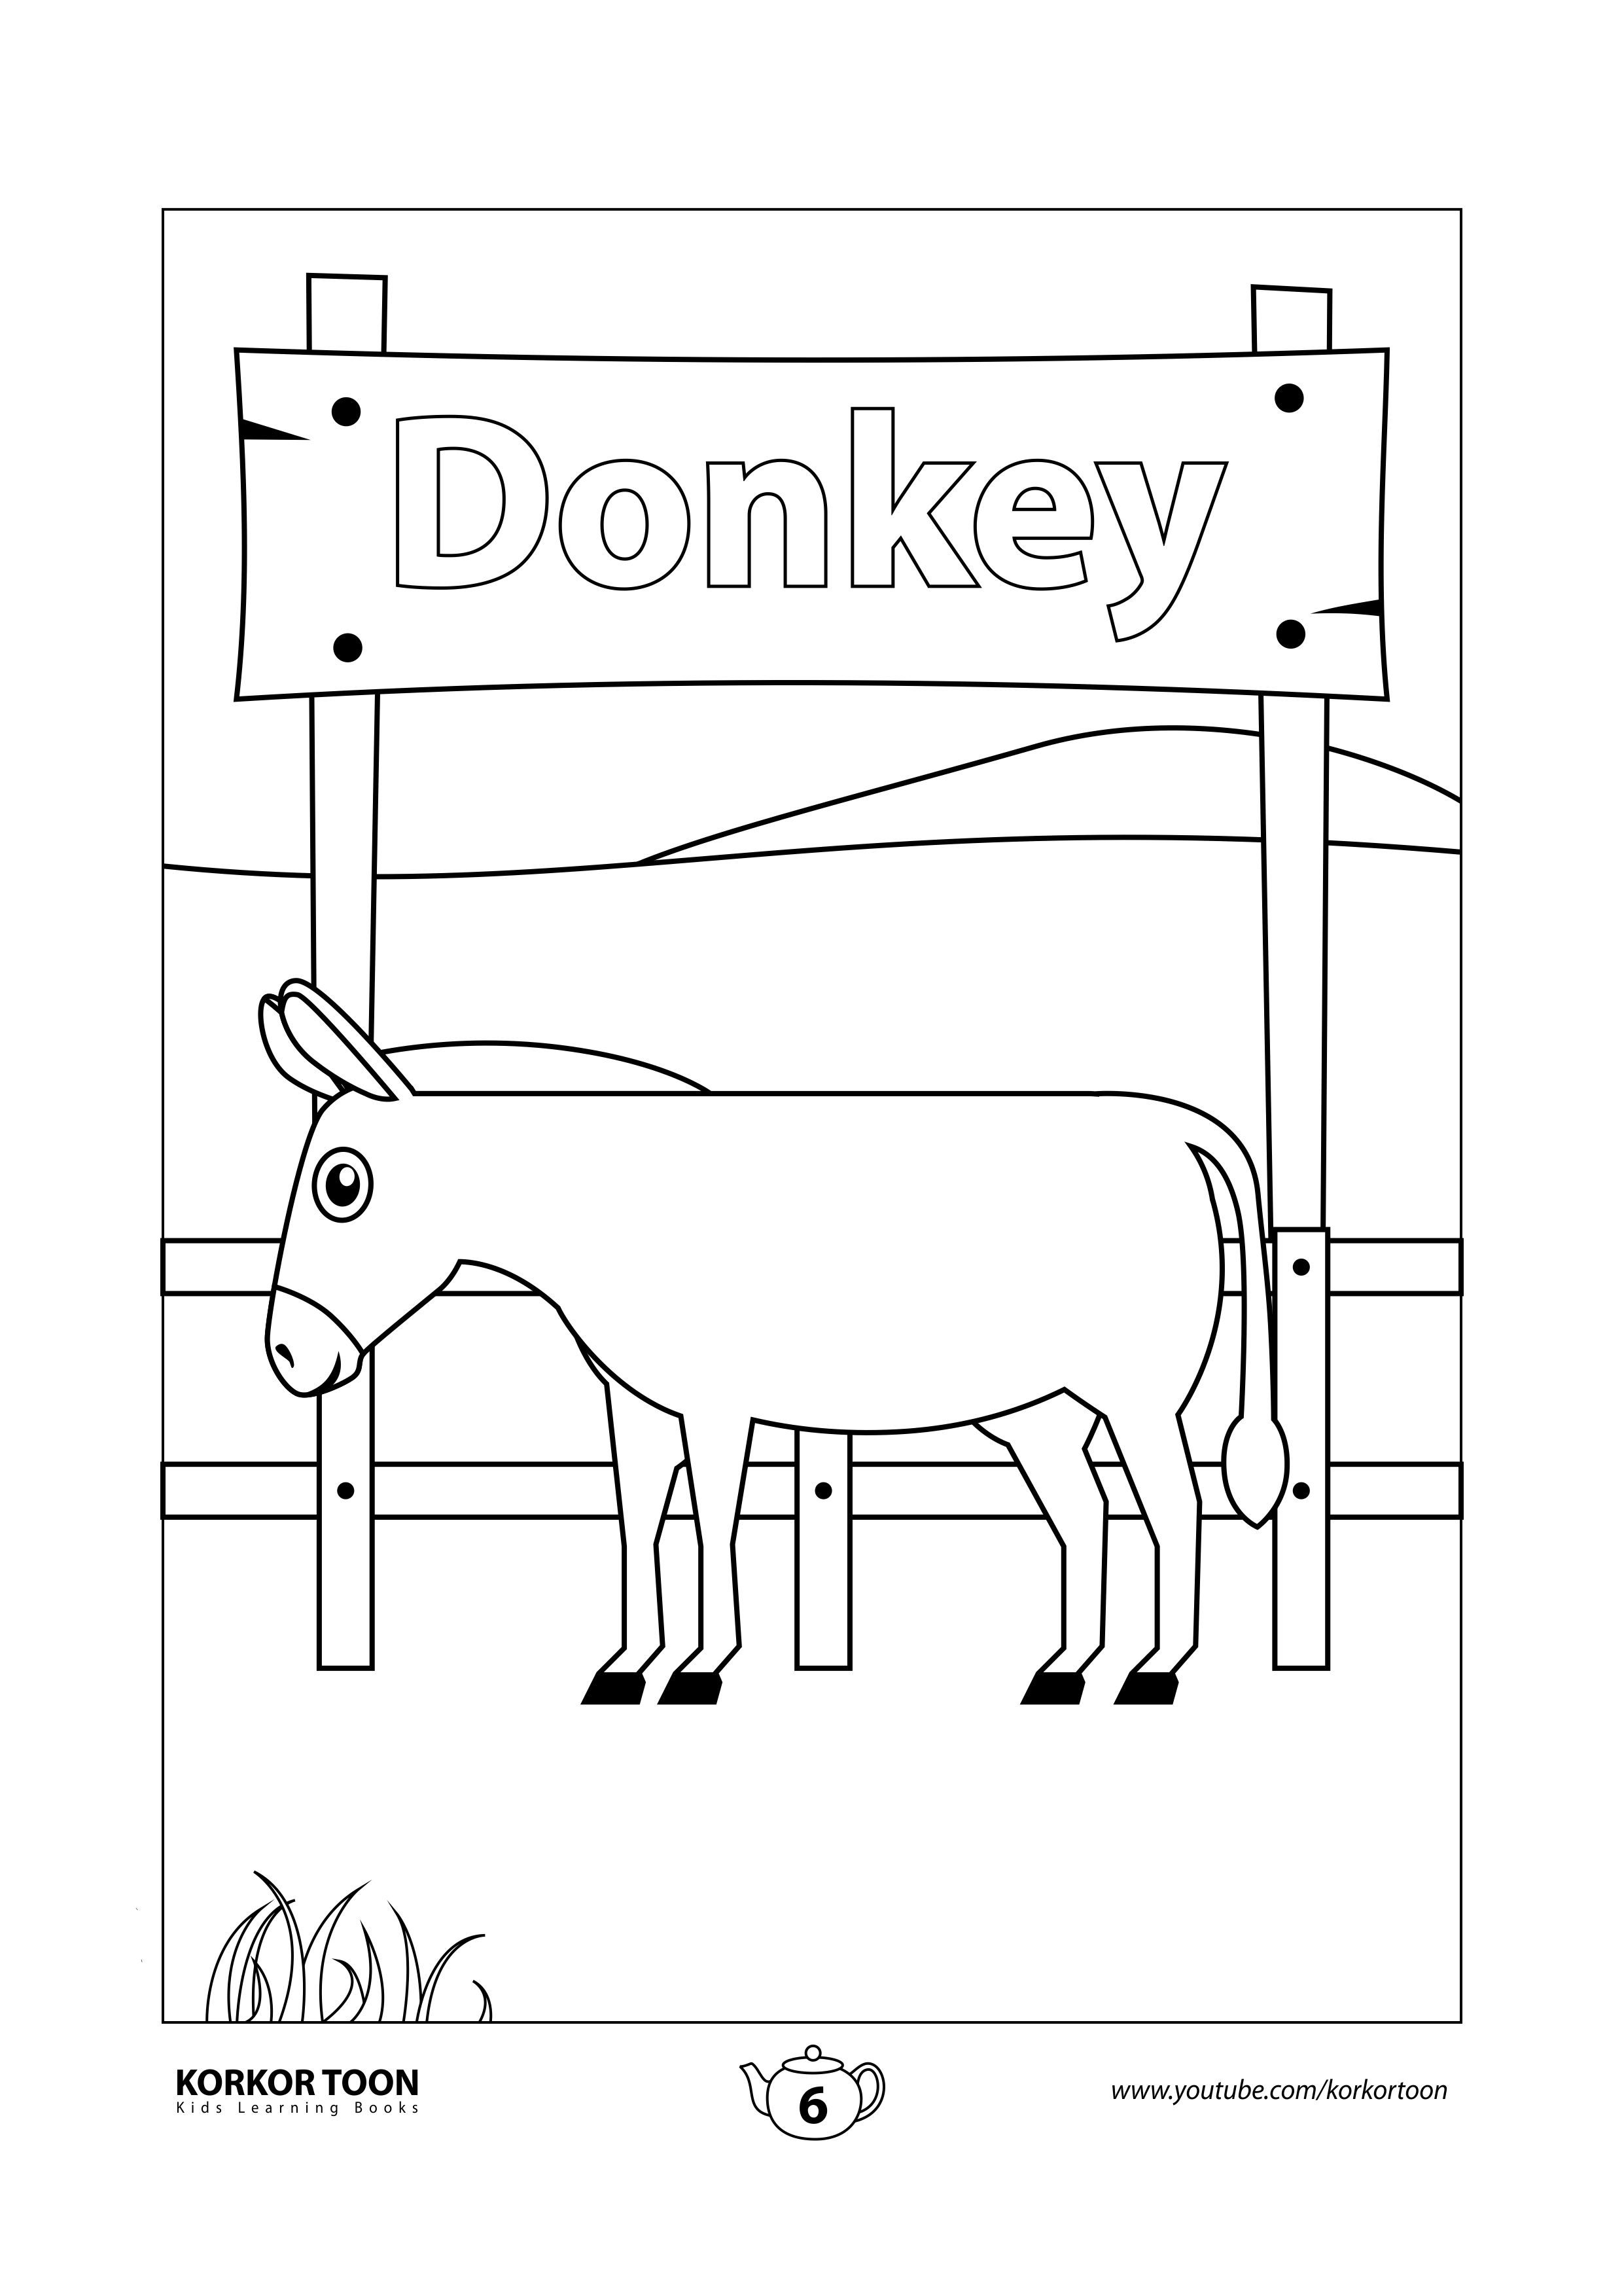 Donkey Coloring Page Farm Animals Coloring Book Animal Coloring Books Coloring Books Kids Coloring Books